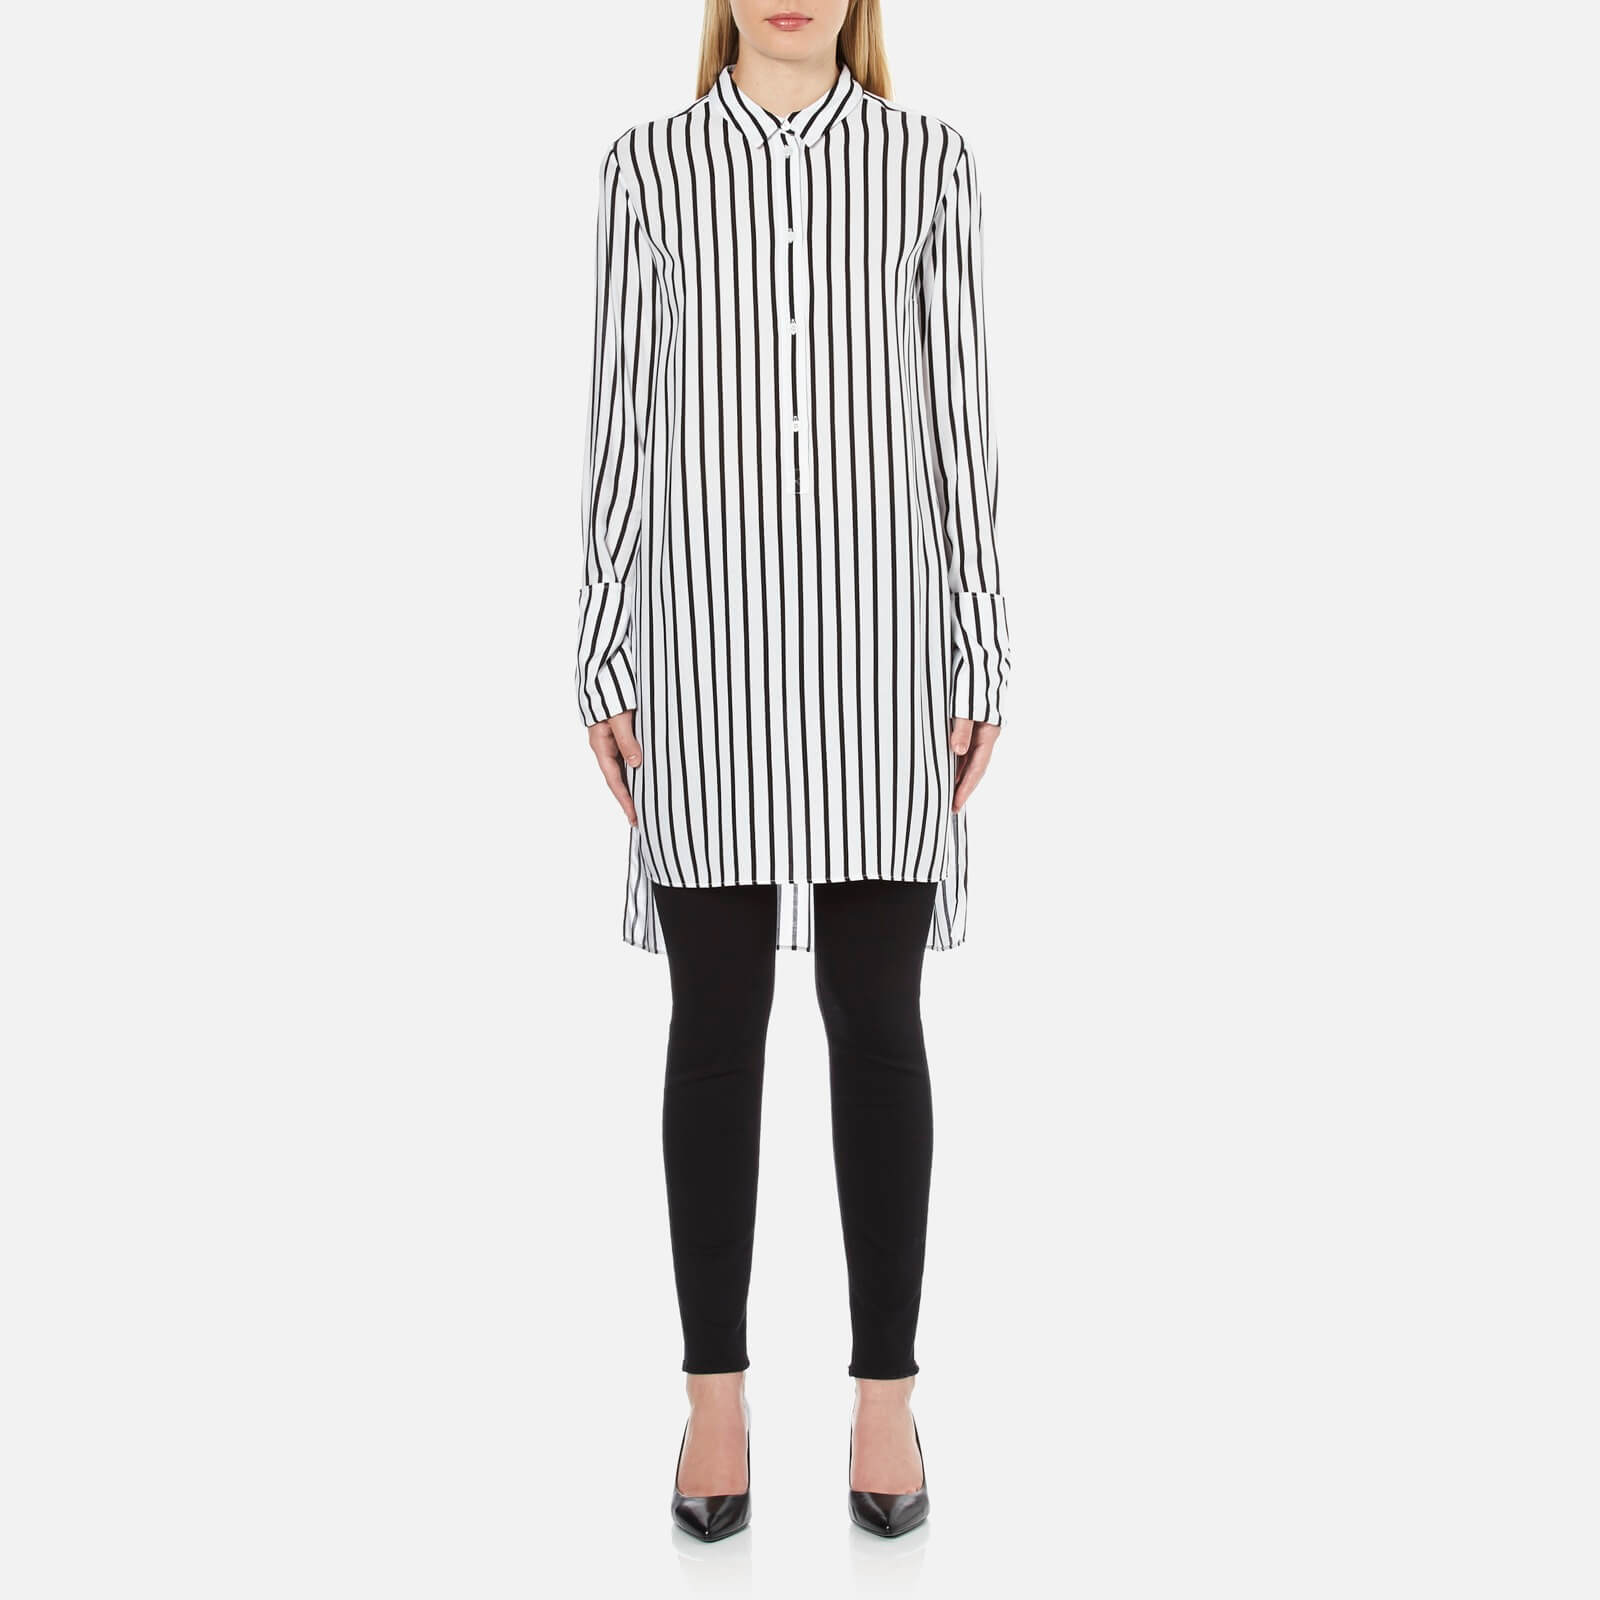 5f995f6230c McQ Alexander McQueen Women's Tunic Shirt Dress - White/Black Stripe - Free  UK Delivery over £50